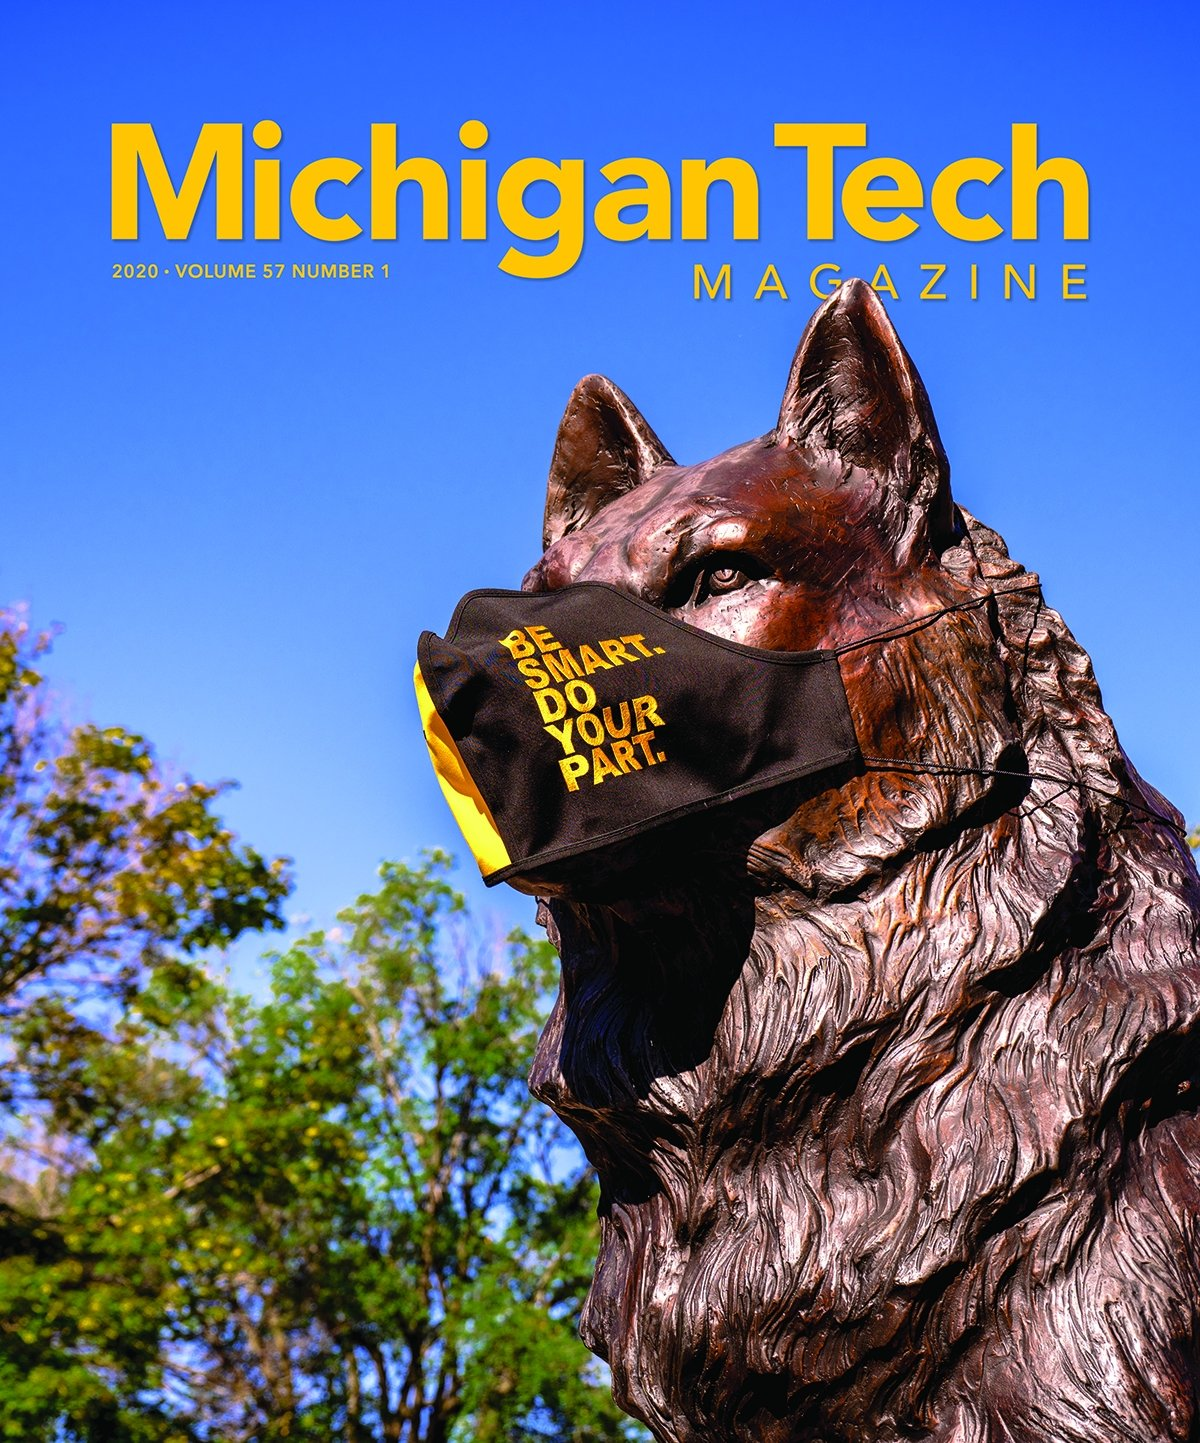 2020 Michigan Tech Magazine Cover Image